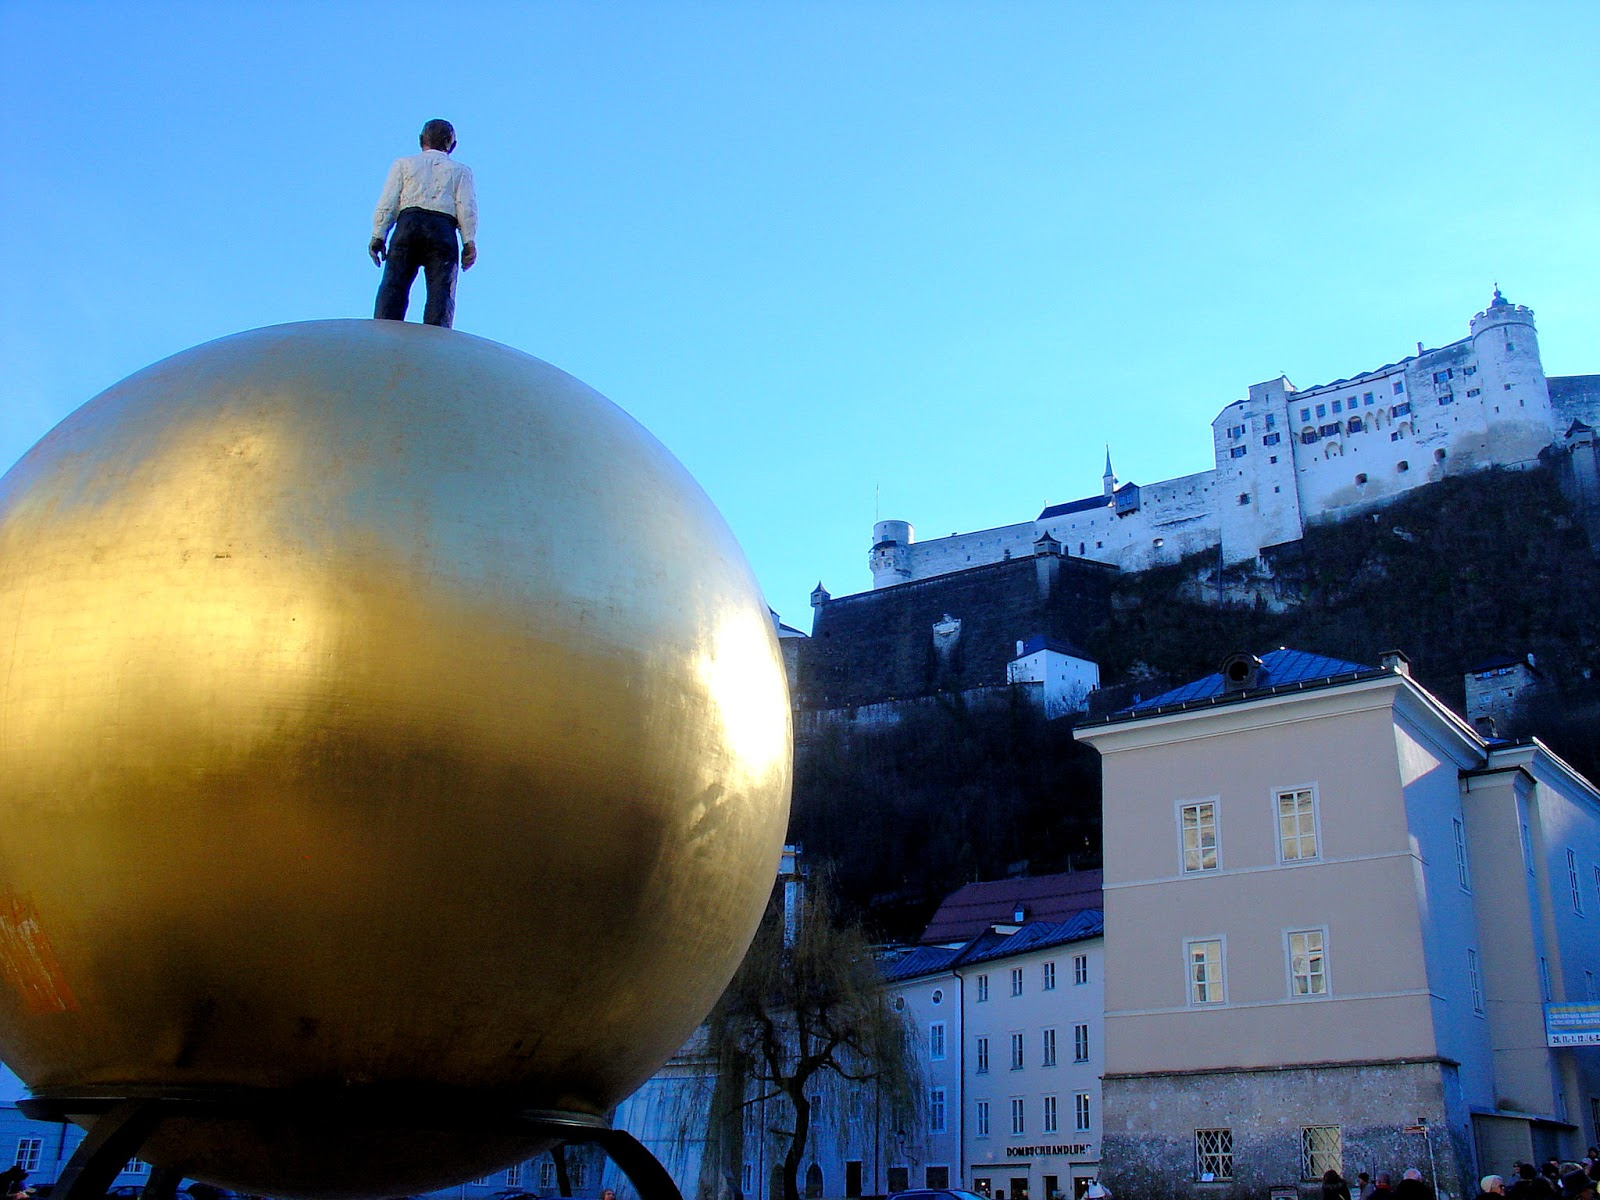 A contrast of time—the 'Sphaera' and the 11th-century Salzburg Fortress.